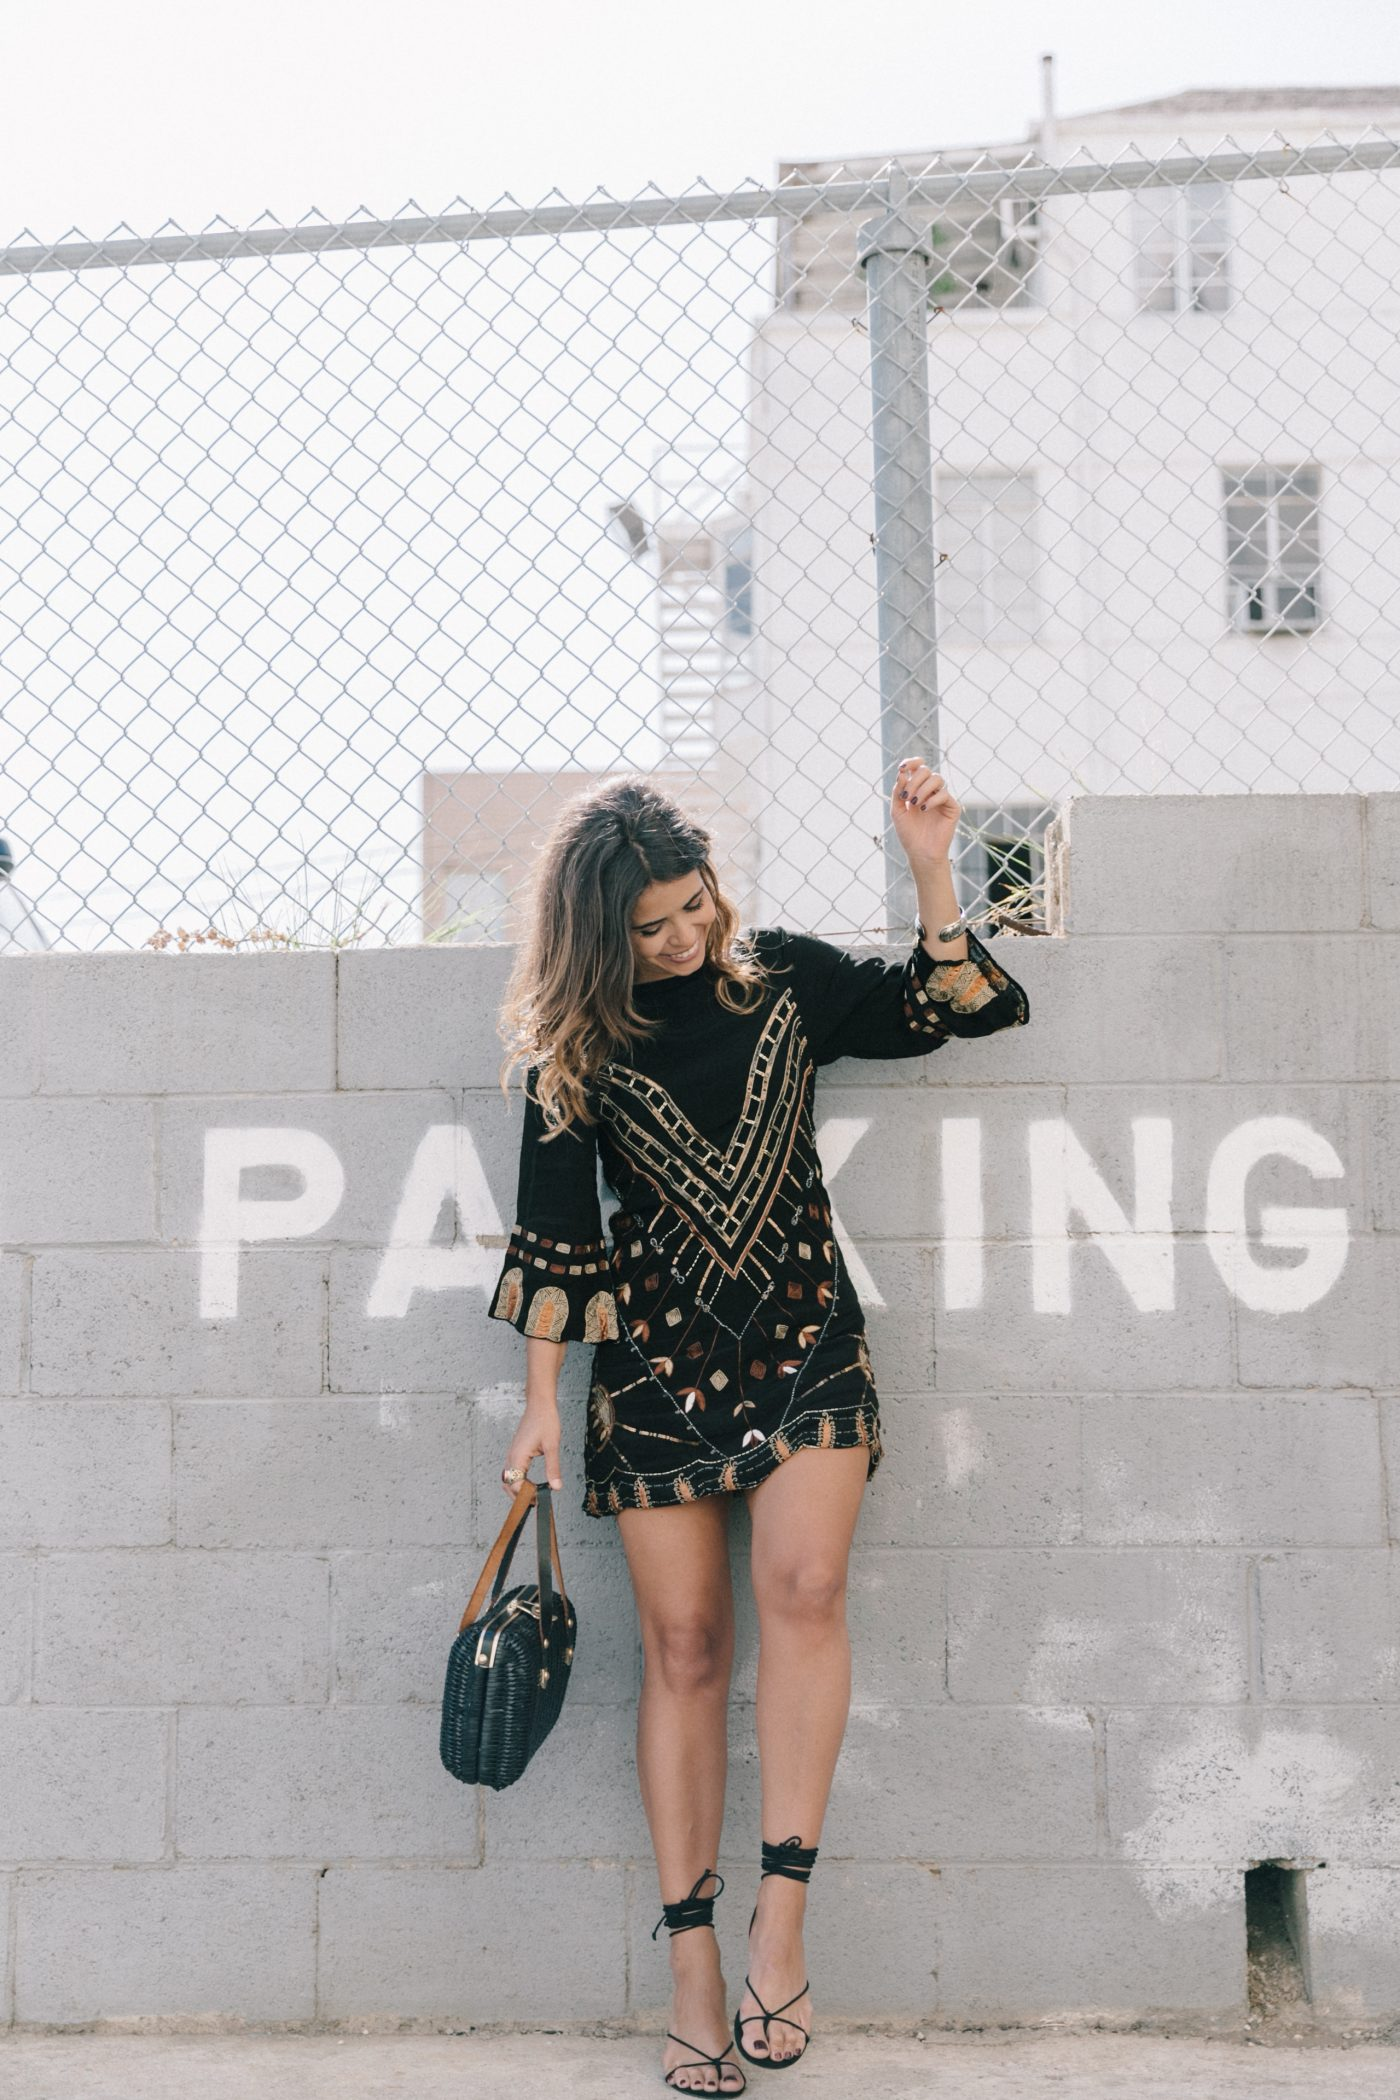 Boho_Dress-Jens_Pirate_Booty-Black_Beaded_Dress-Lace_Up_Sandals-Los_Angeles-Outfit-Collage_Vintage-76